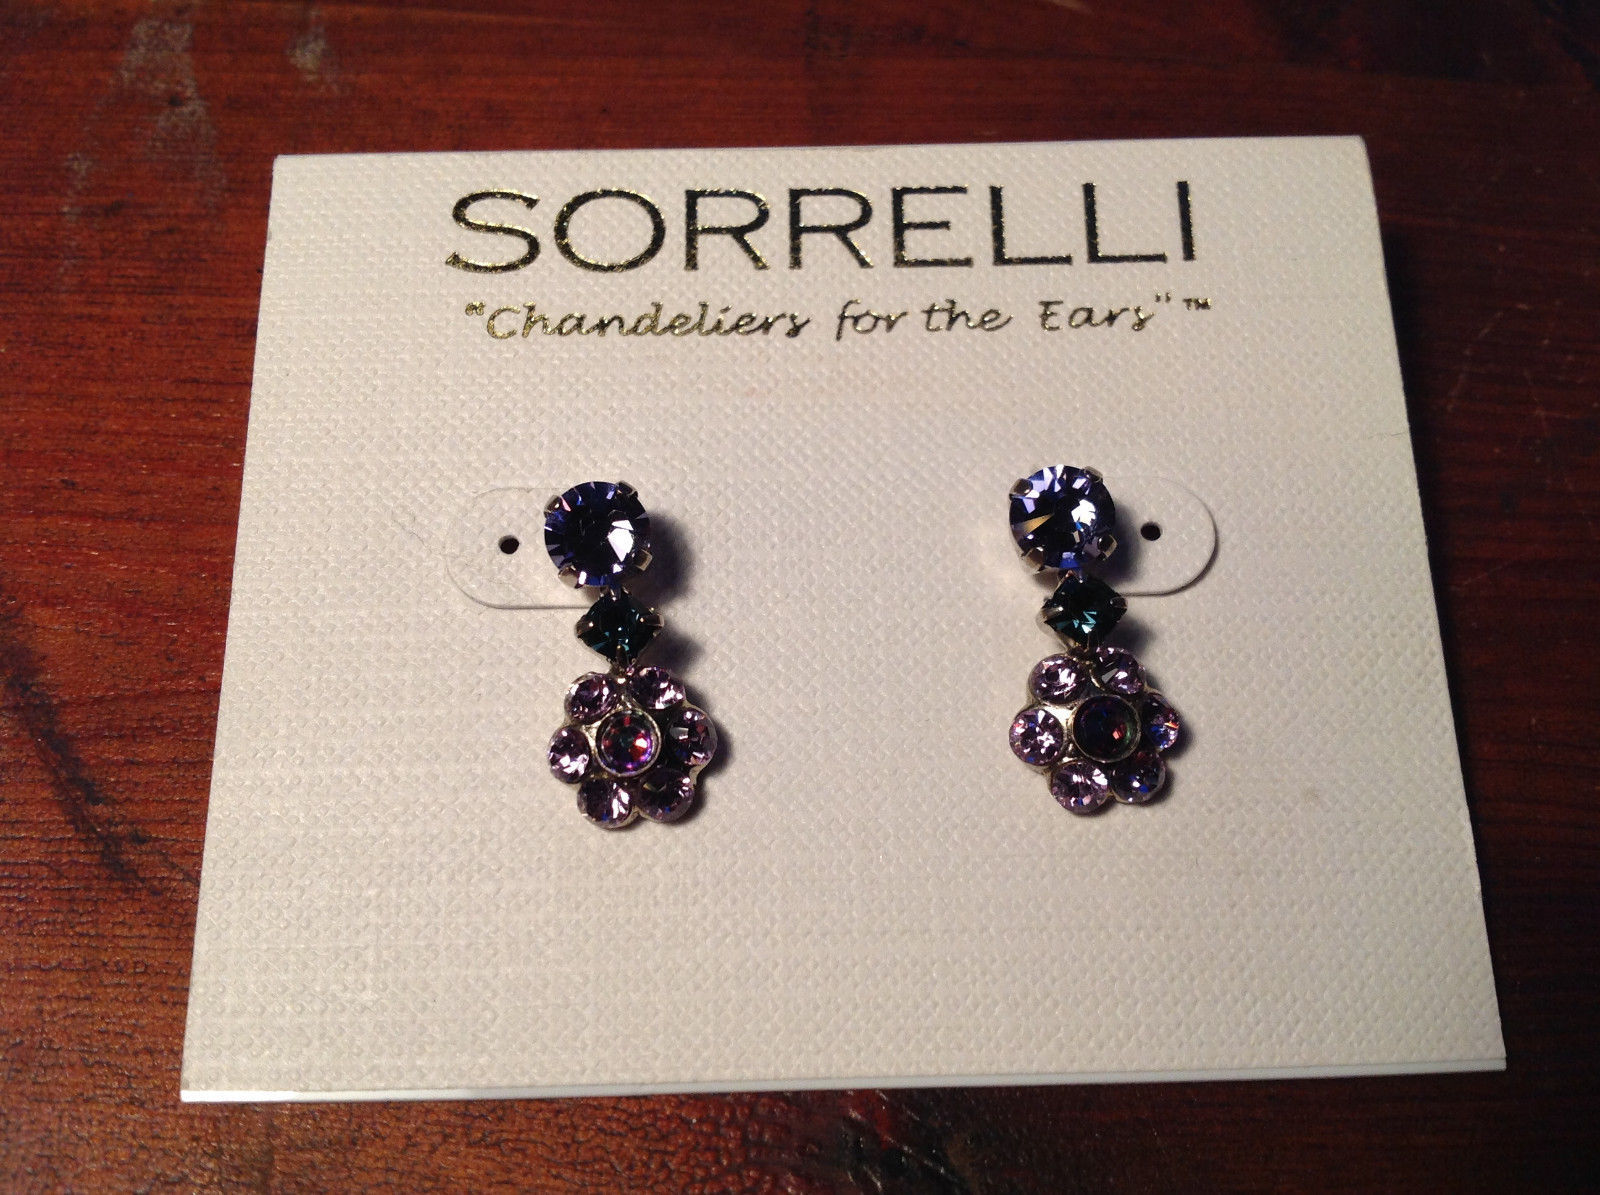 New Sorrelli Dangling Earrings Silver Tone Finish Antique Authentic Earrings